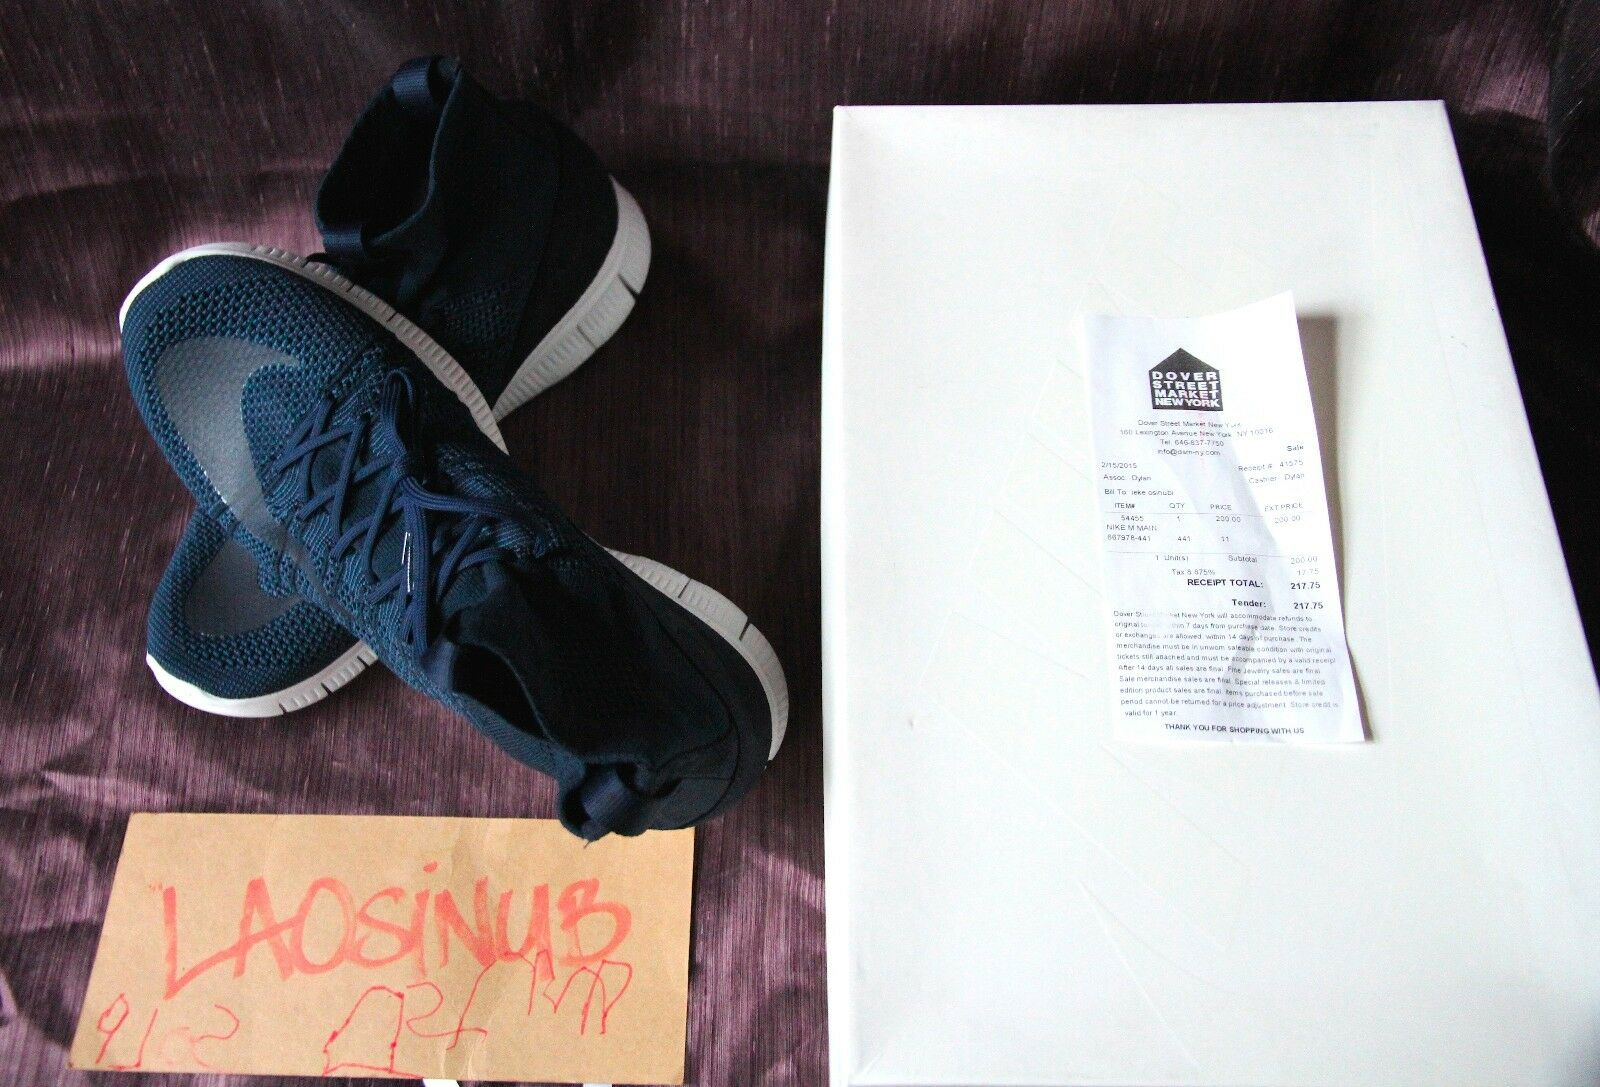 NIKE HTM FREE SP FLYKNIT SUPERFLY MECURIAL SP FREE - M SIze 11 - NIB - RARE - OBSIDIAN 35a974